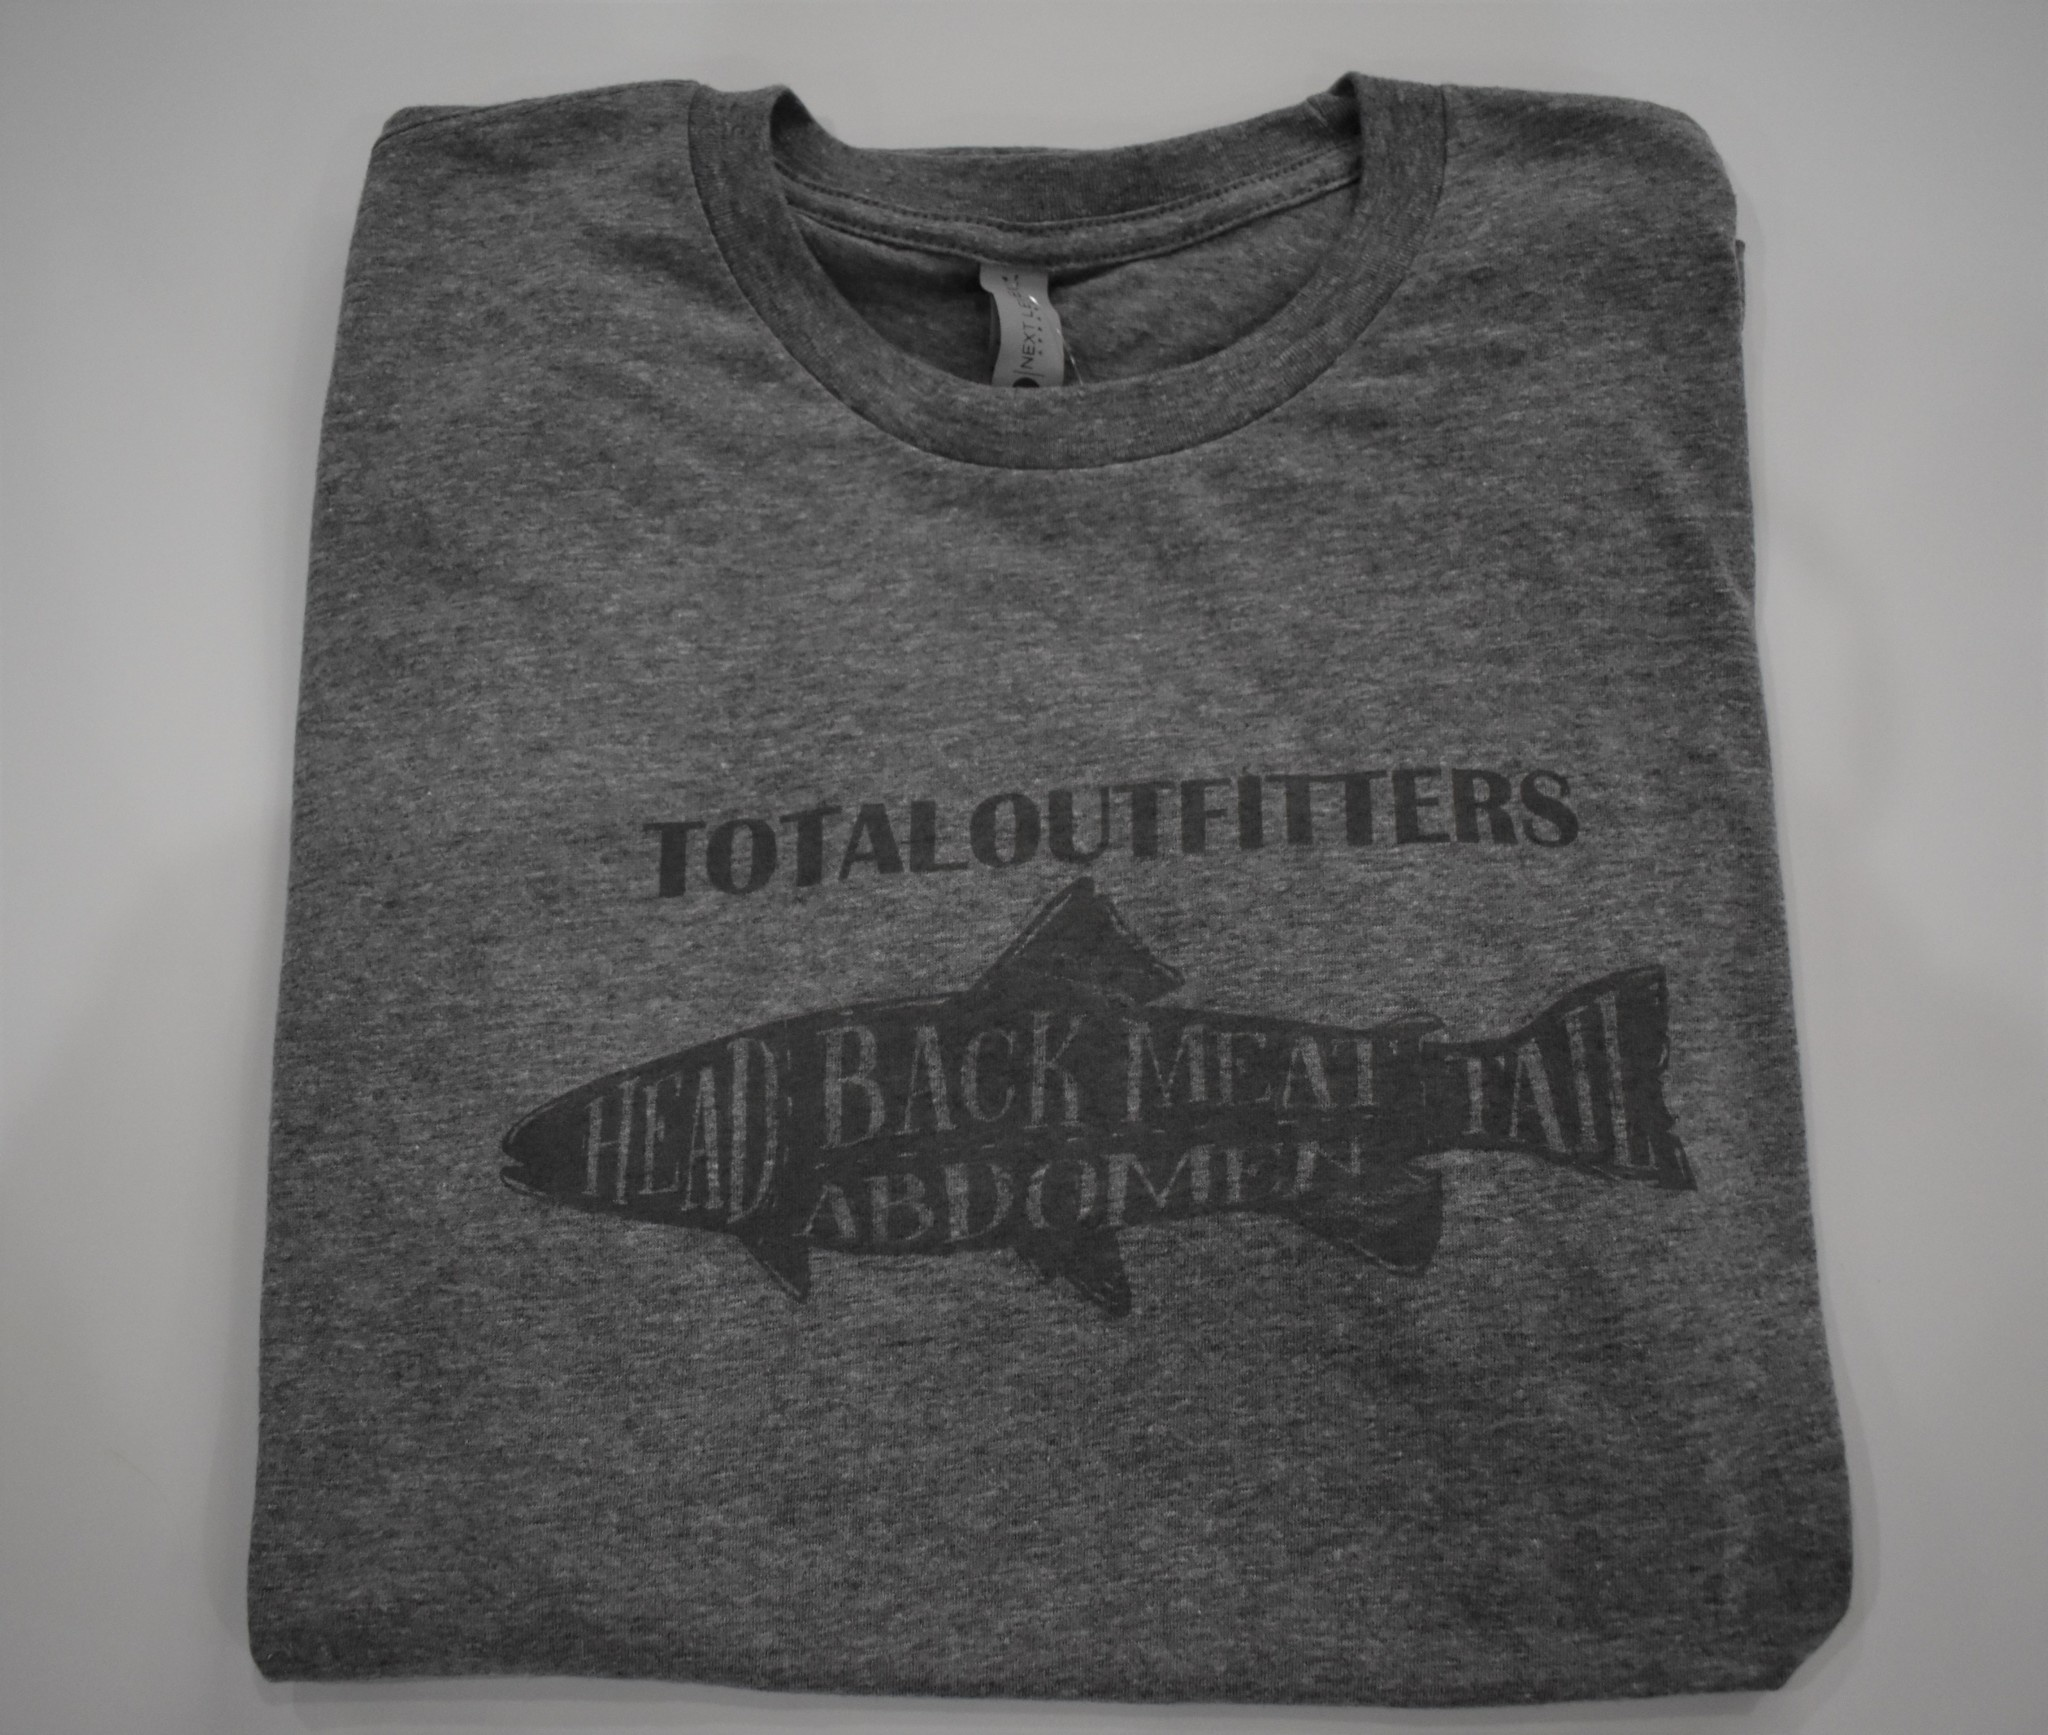 TOTAL OUTFITTERS TOTAL OUTFITTERS GREY LOGO T-SHIRT